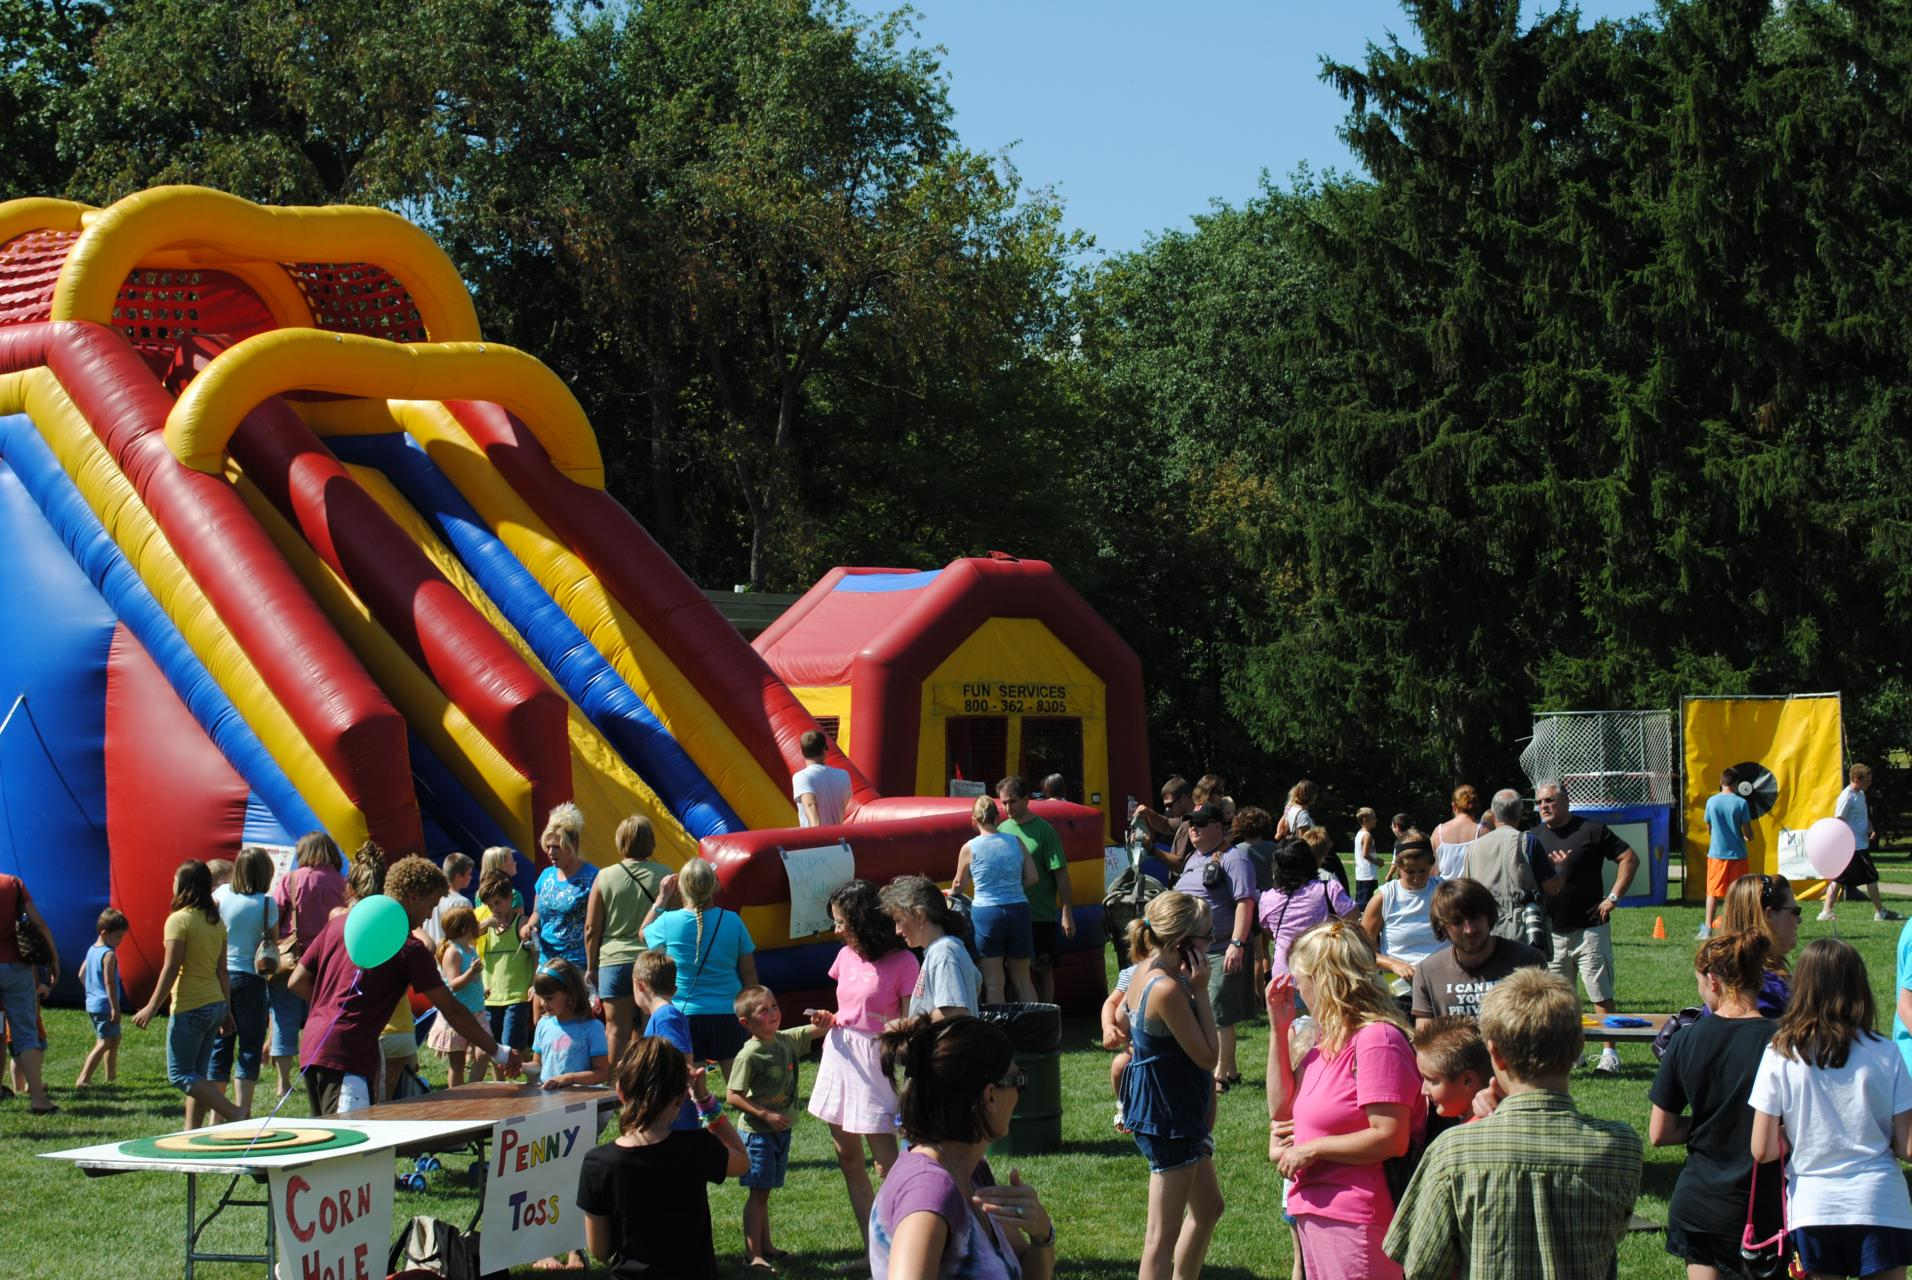 Uncategorized Carnival For Kids kids carnival city of cuyahoga falls carnival